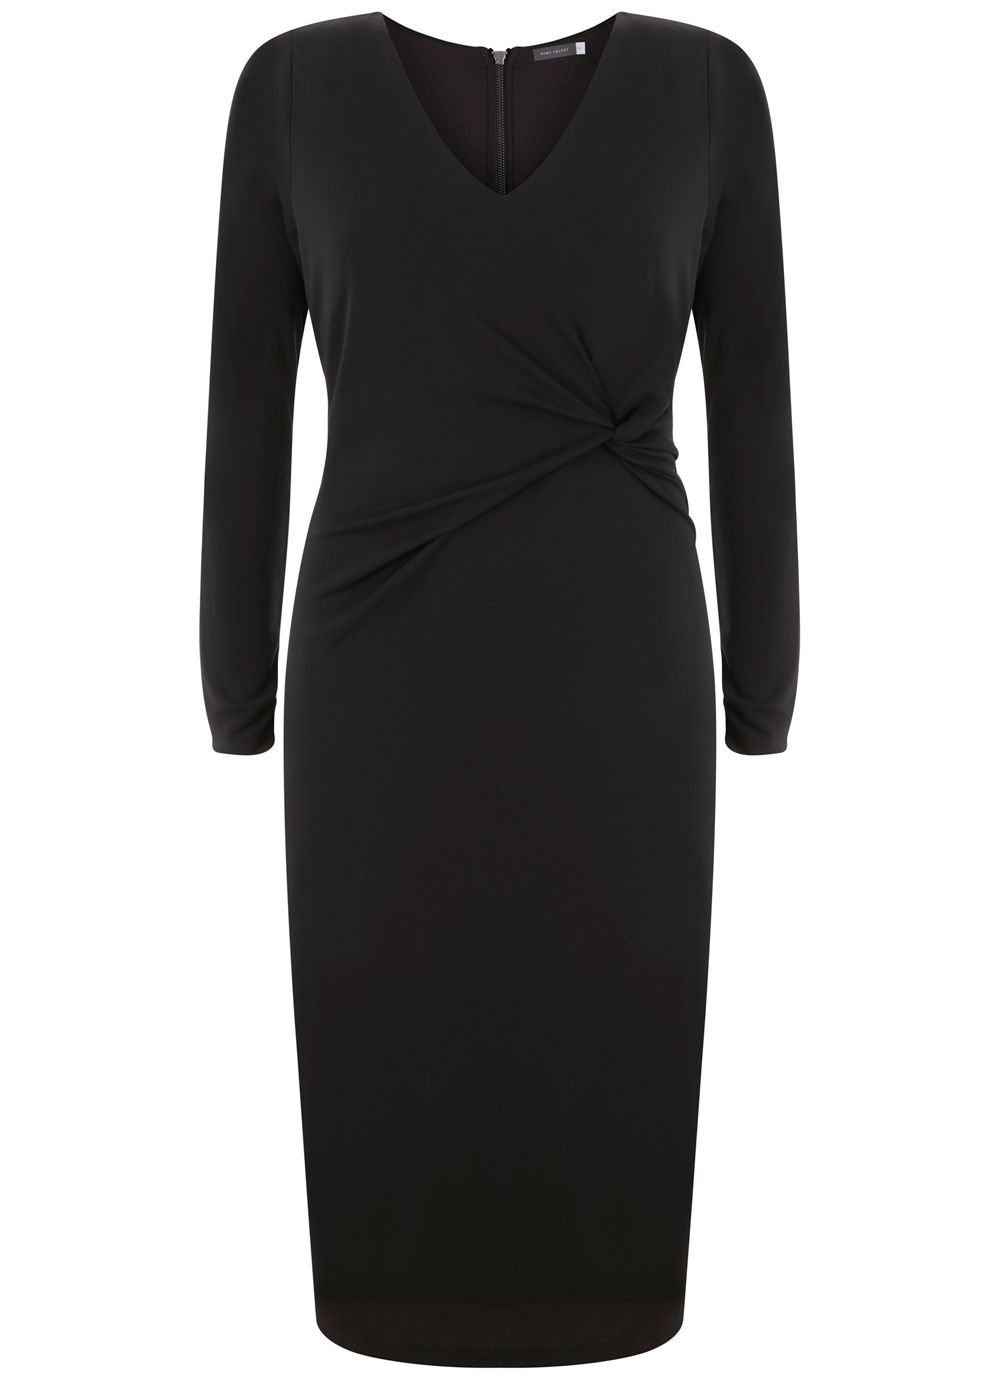 Mint Velvet Black Twist Front Jersey Dress, Black